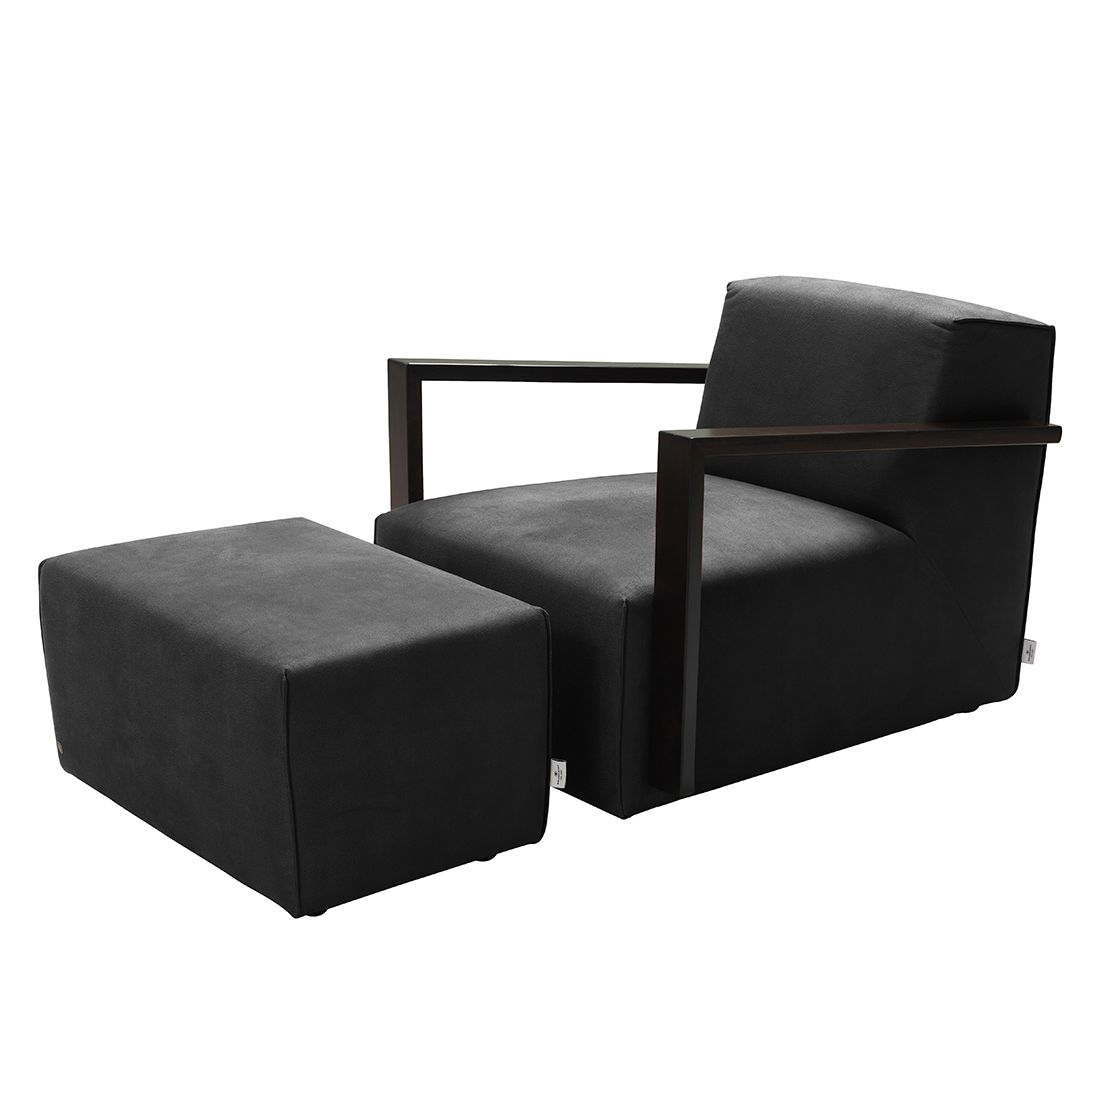 goedkoop Fauteuil Lazy antiekleren look Hocker Zwart Tom Tailor